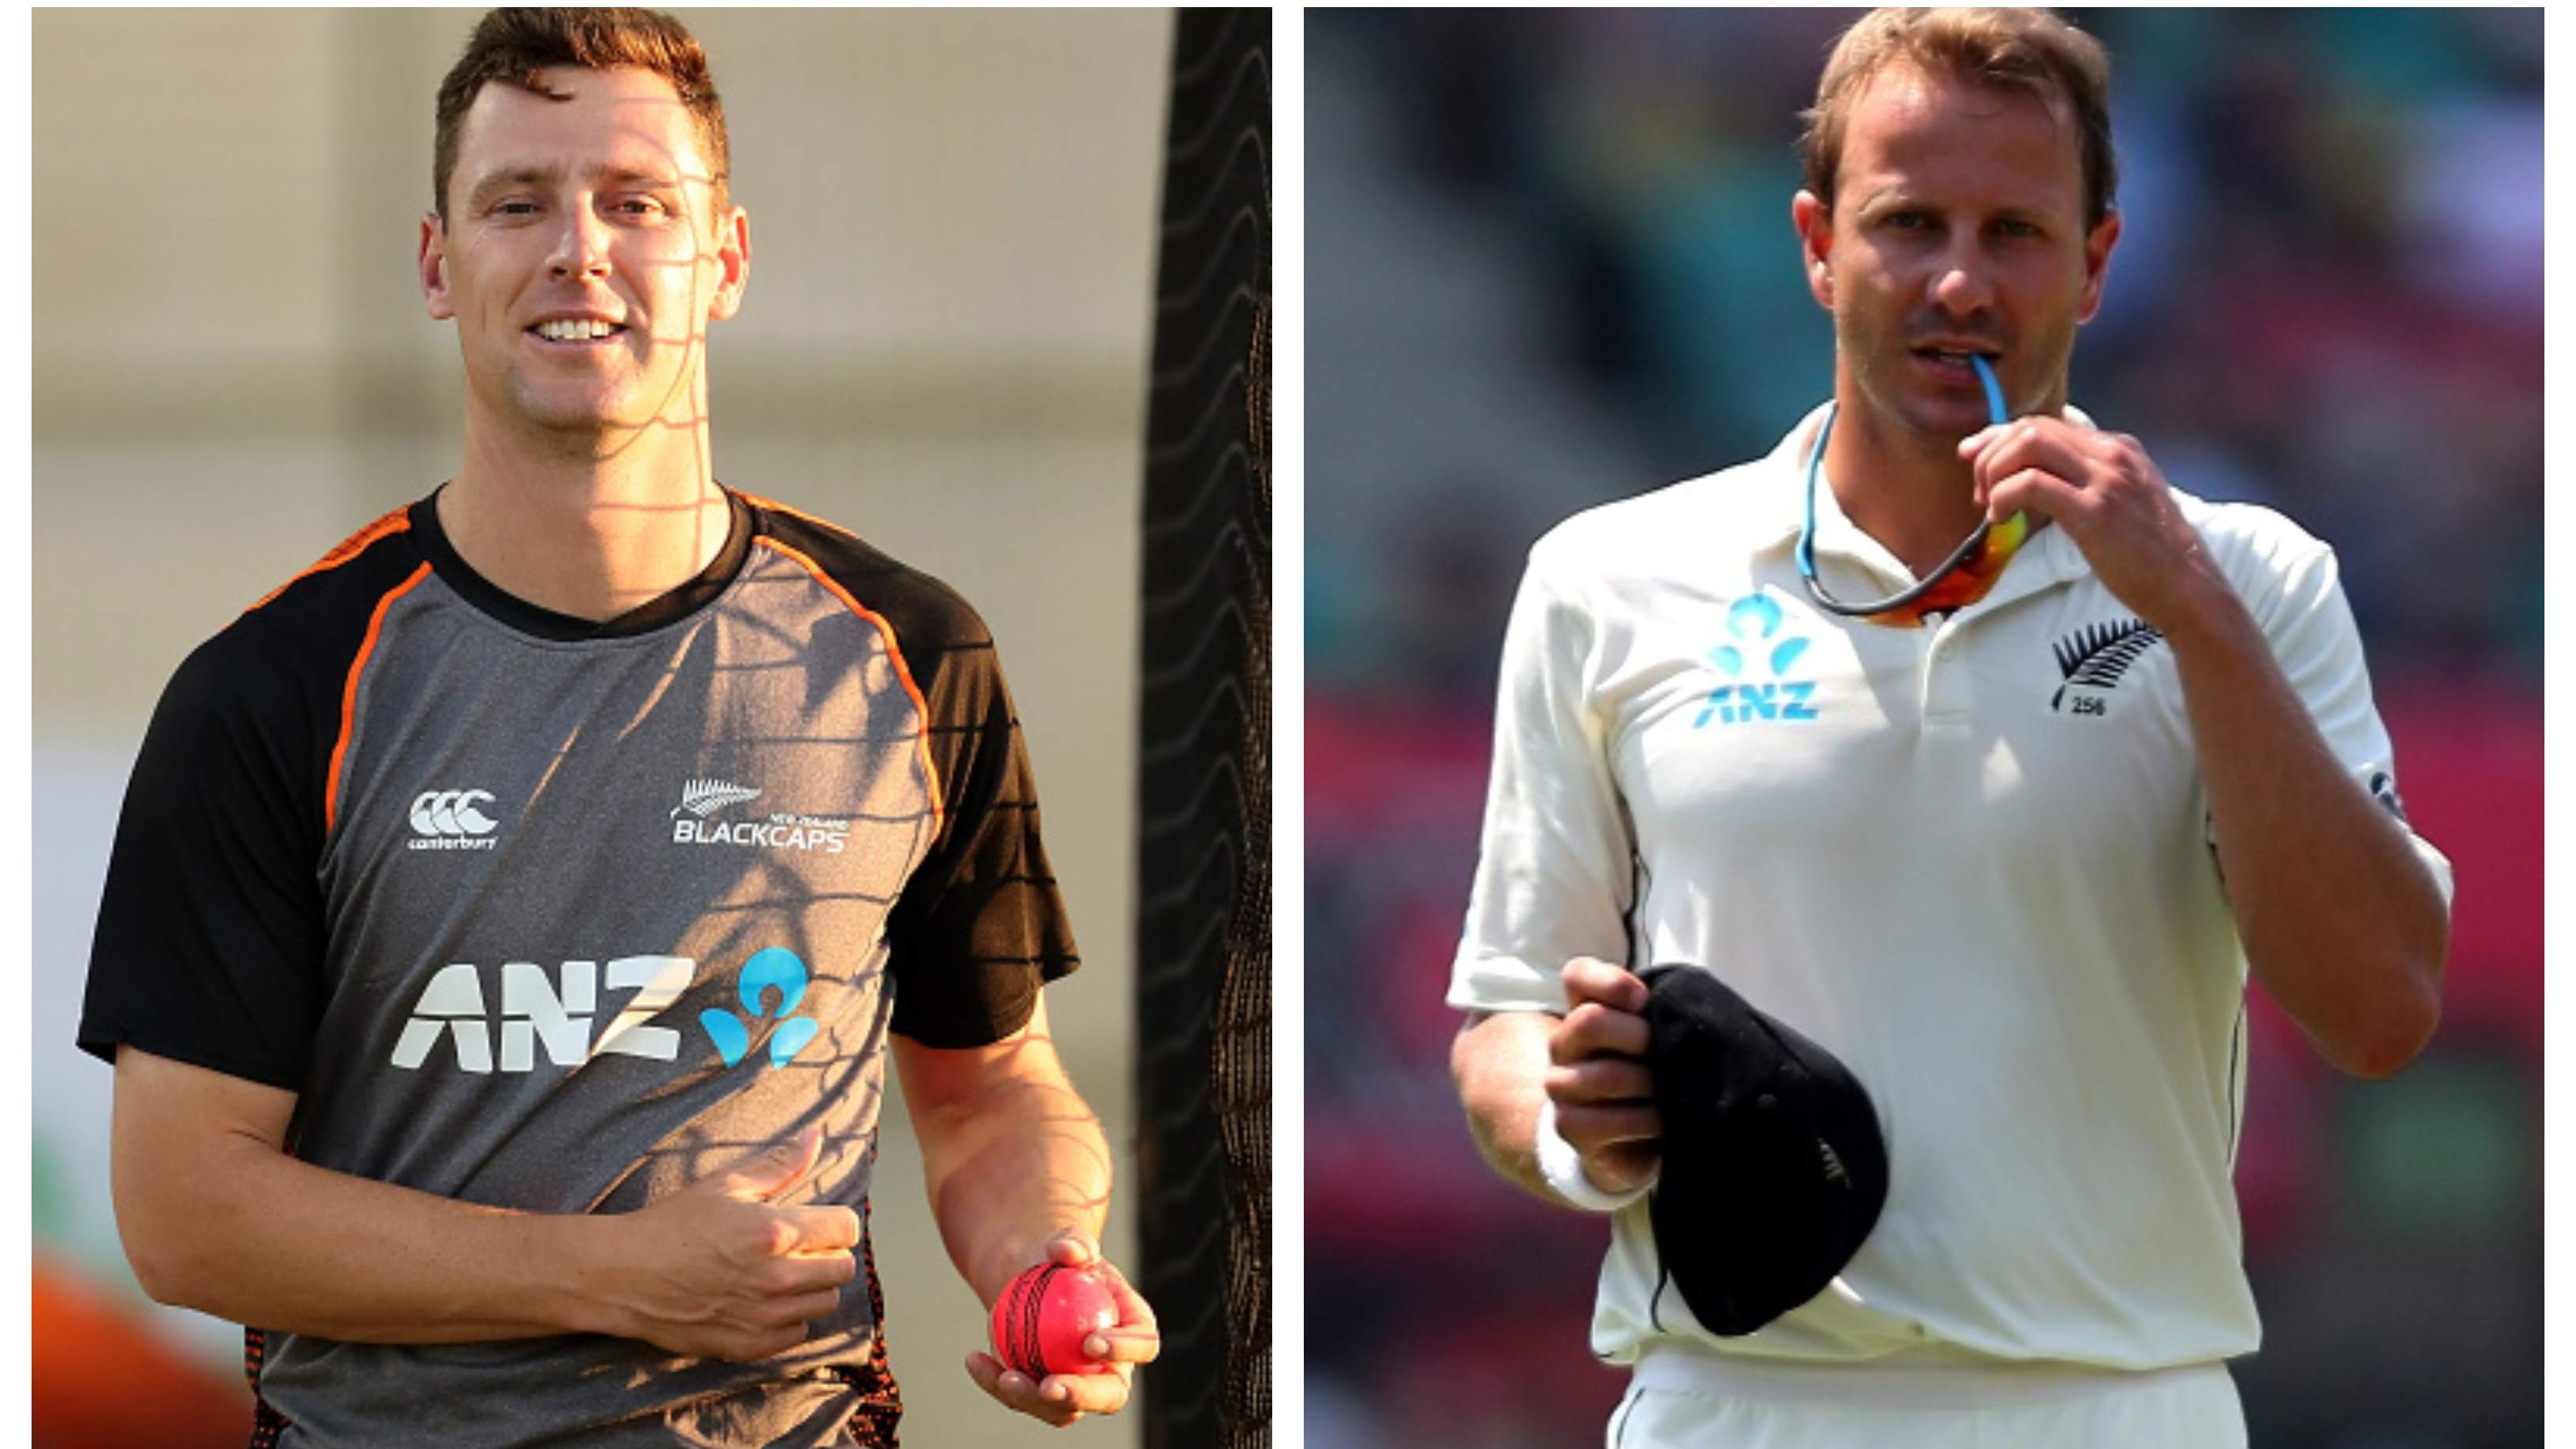 NZ v IND 2020: New Zealand called up Matt Henry as cover for Neil Wagner ahead of 1st Test